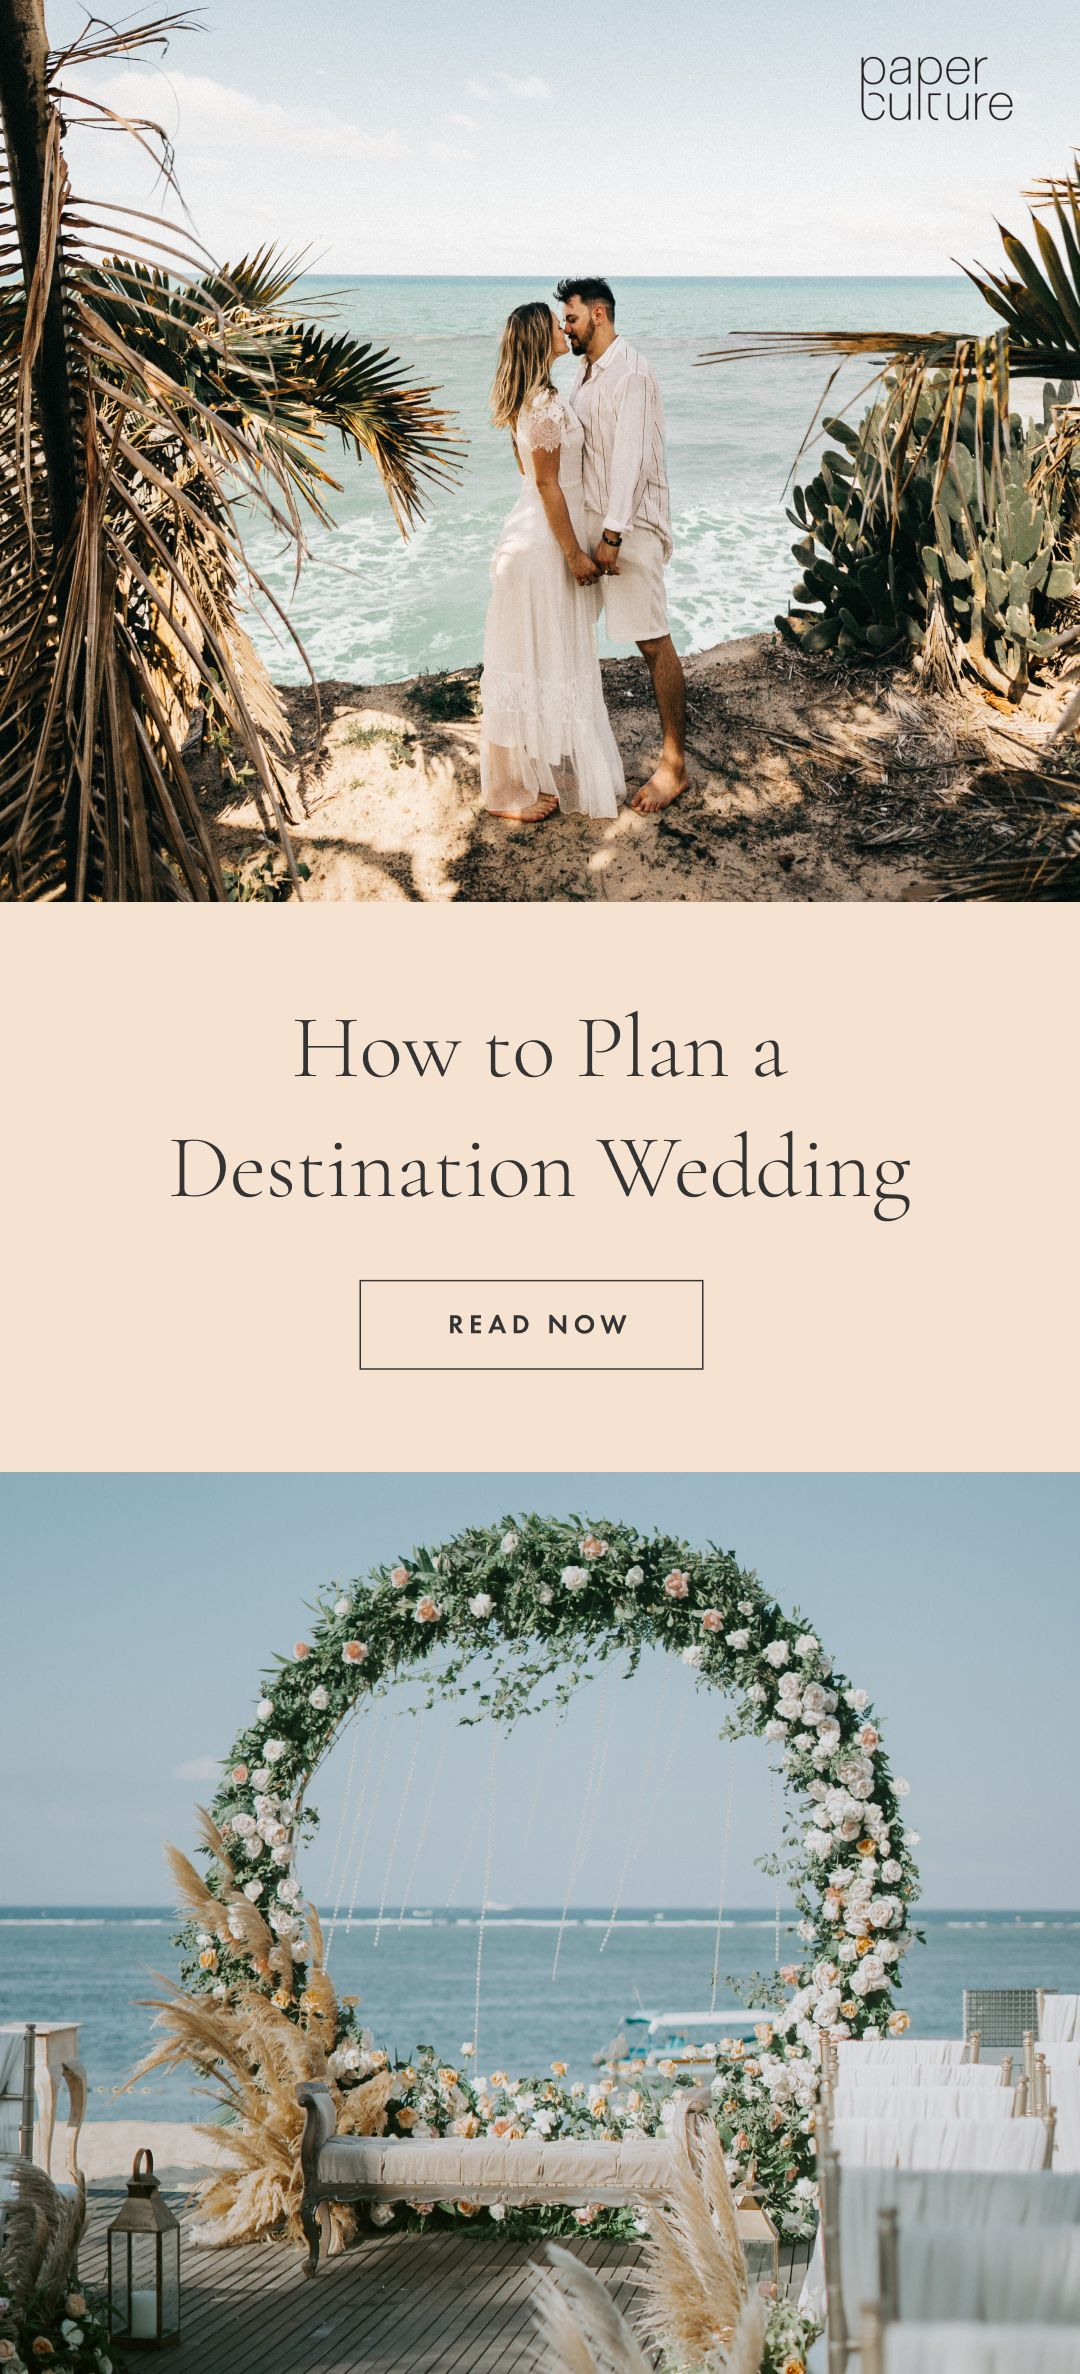 How To Plan A Destination Wedding In 2020 Wedding Planning Destination Wedding Planning Destination Wedding